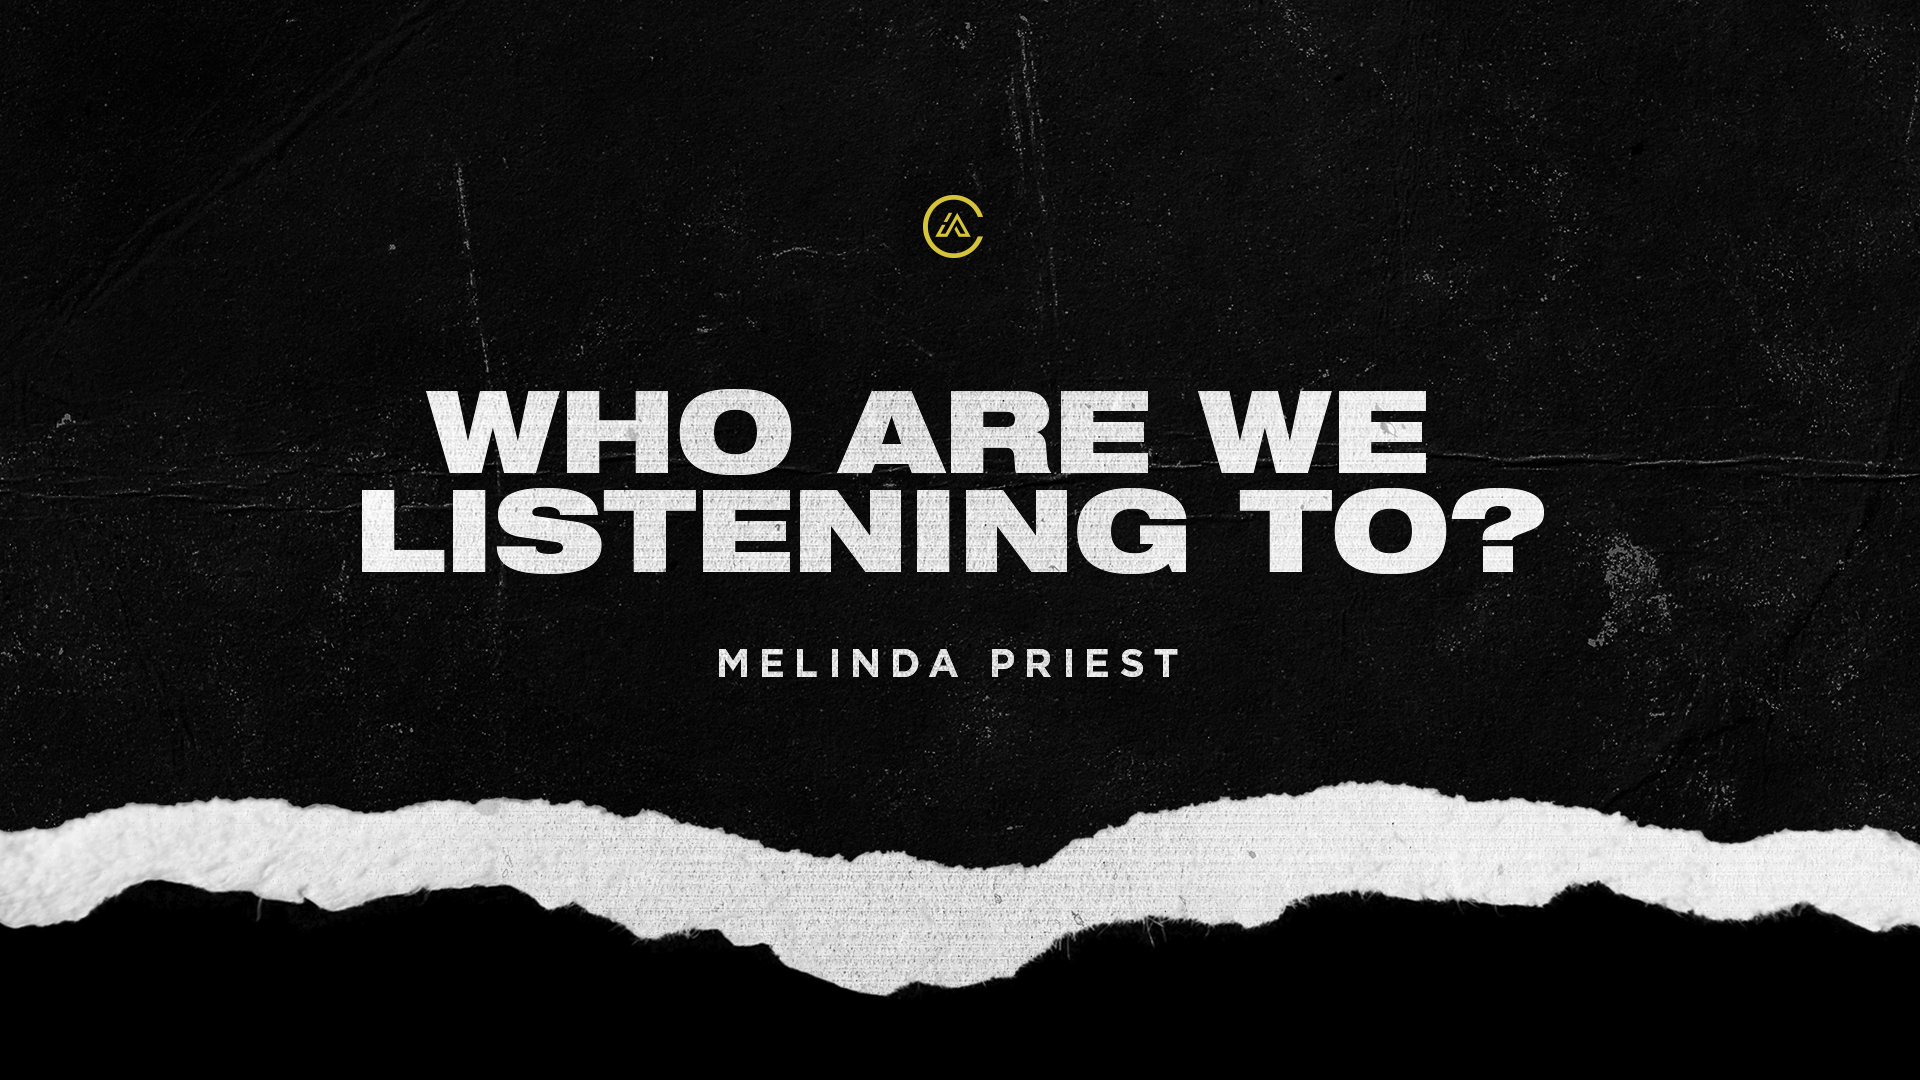 Who are we listening to